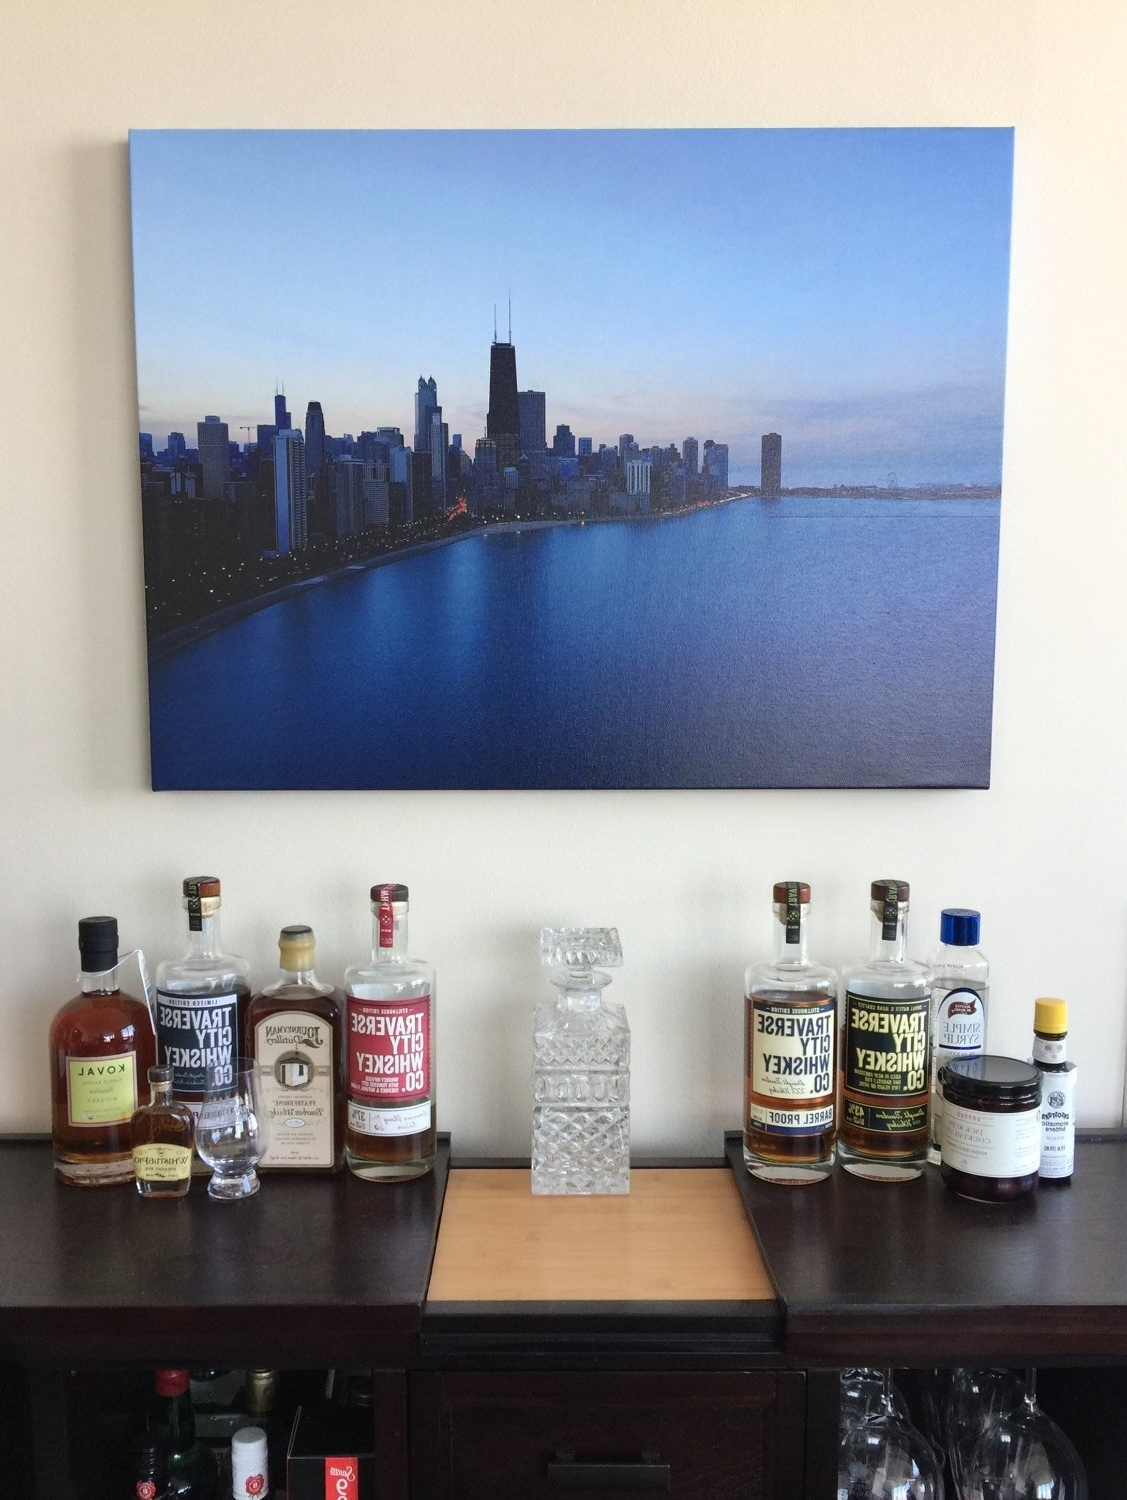 Recent Chicago Wall Art For Sunsets In Chicago – Office And Wall Art, Urban Art, Chicago Art (View 10 of 15)